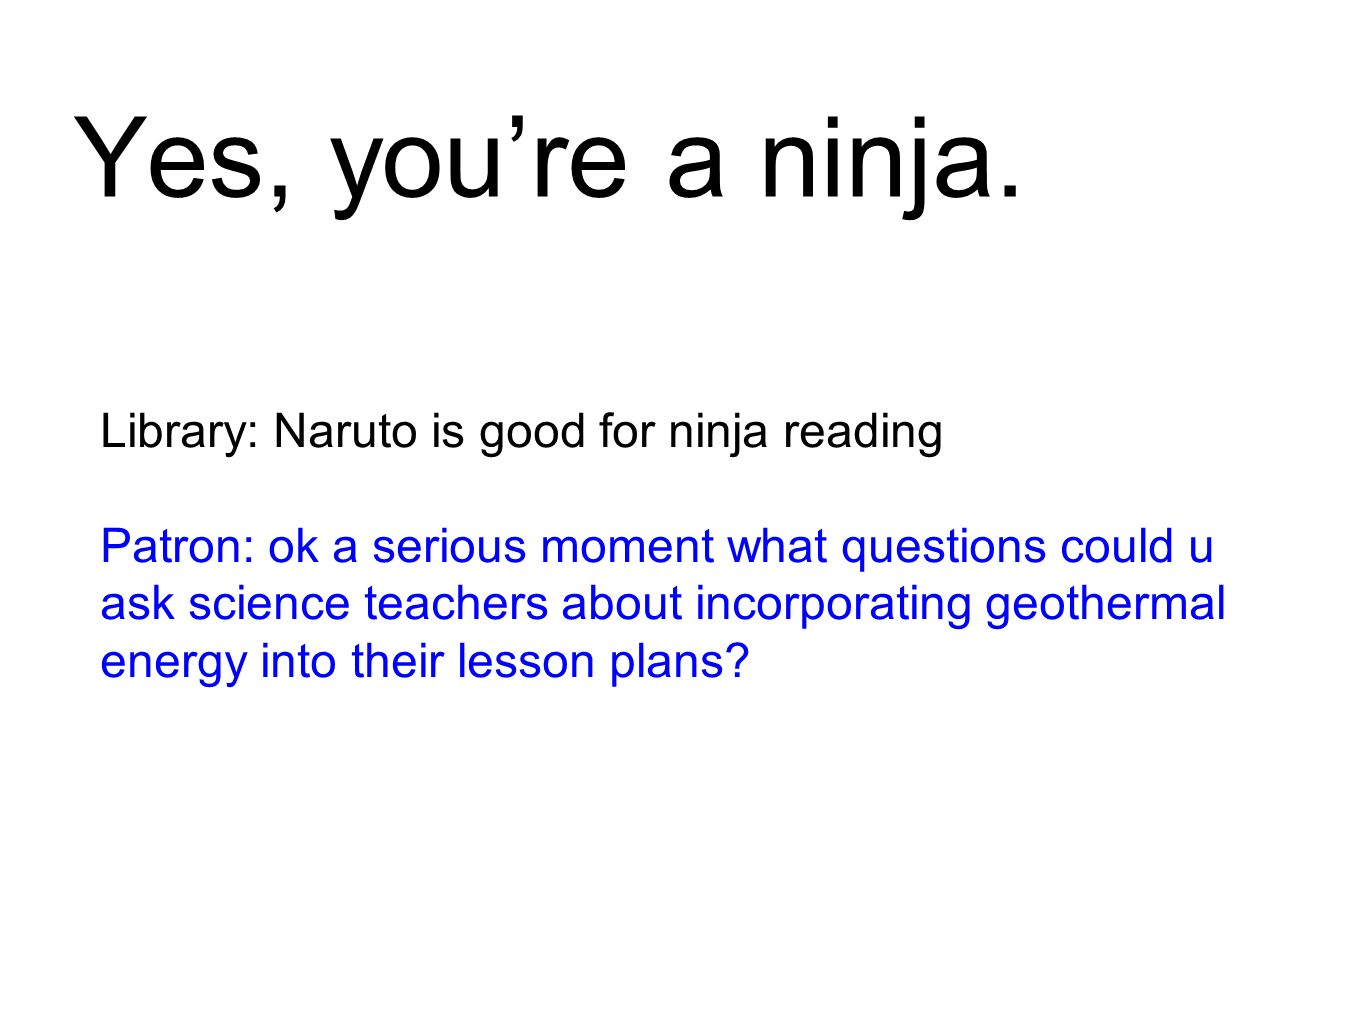 Yes, youre a ninja. Library: Naruto is good for ninja reading Patron: ok a serious moment what questions could u ask science teachers about incorporat